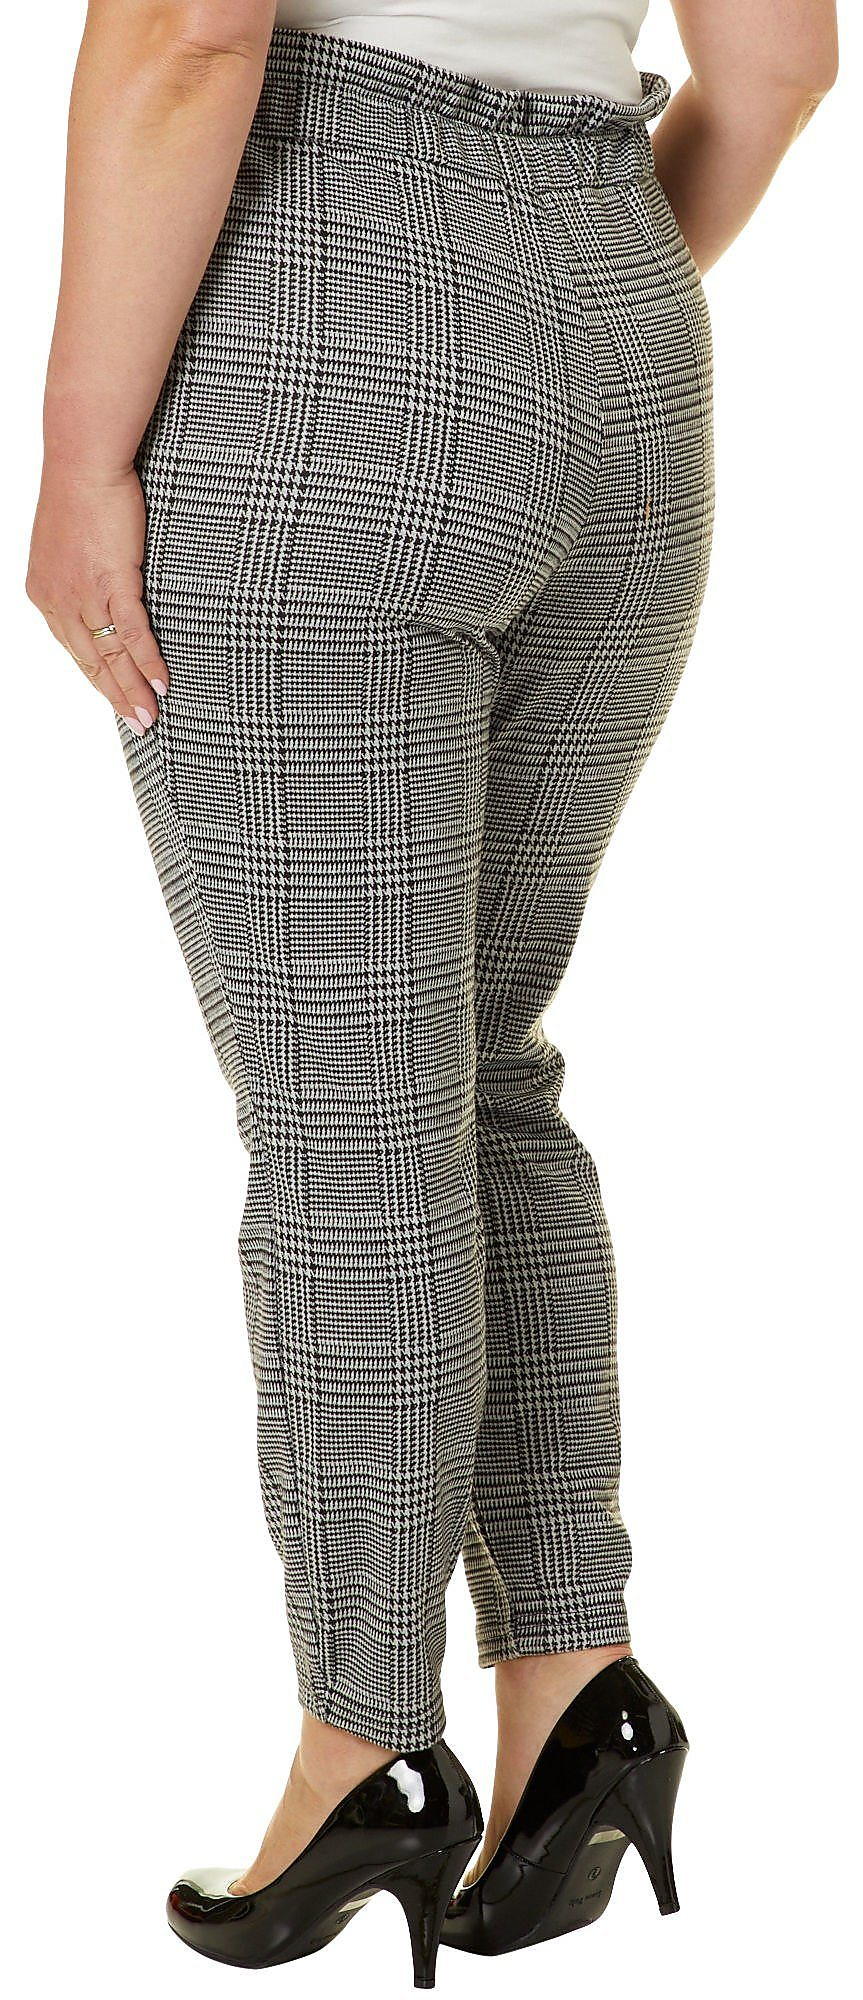 692e5b35113 Eye Candy Juniors Plus Belted Houndstooth Print Soft Pants